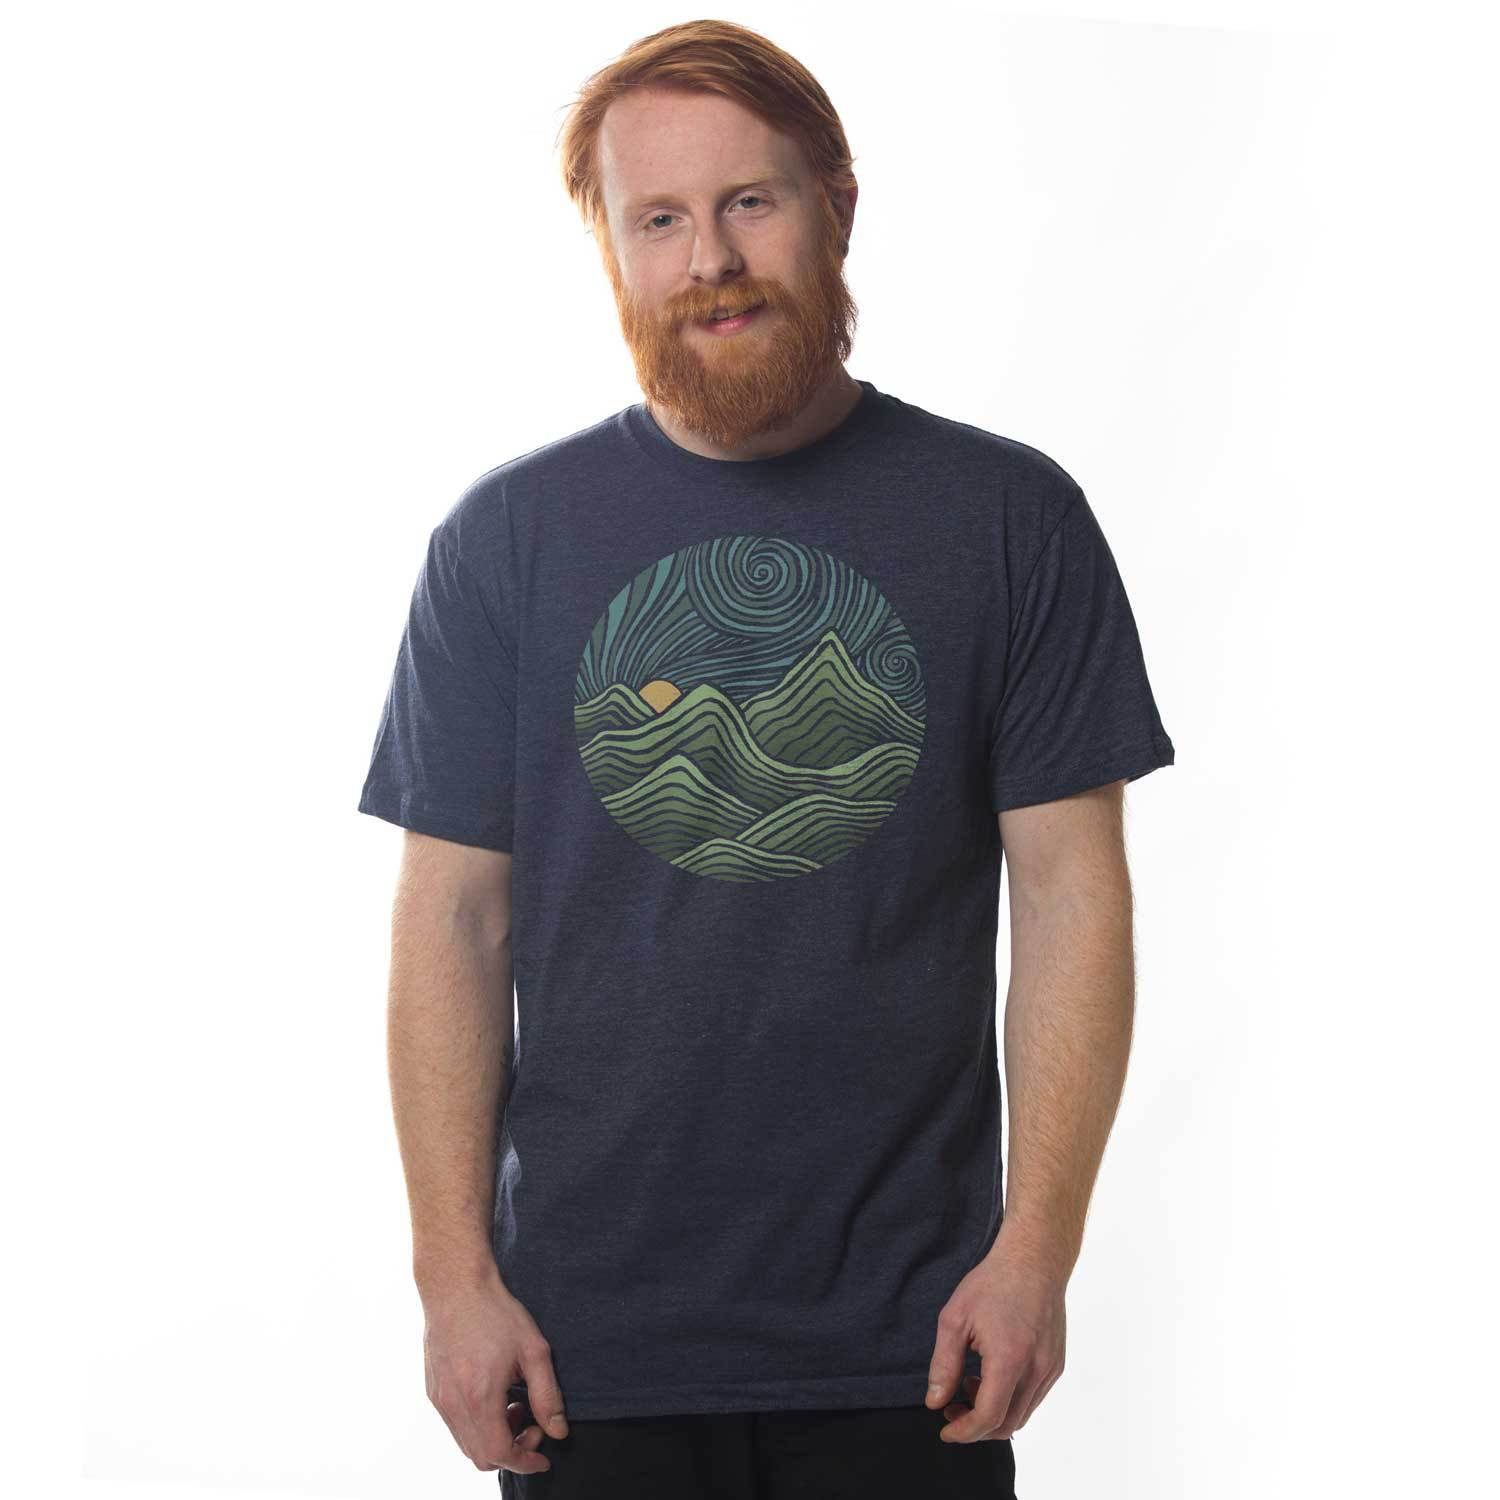 Men's Swirly Mountains Vintage Inspired T-Shirt | Cool Nature Graphic Tee | Solid Threads